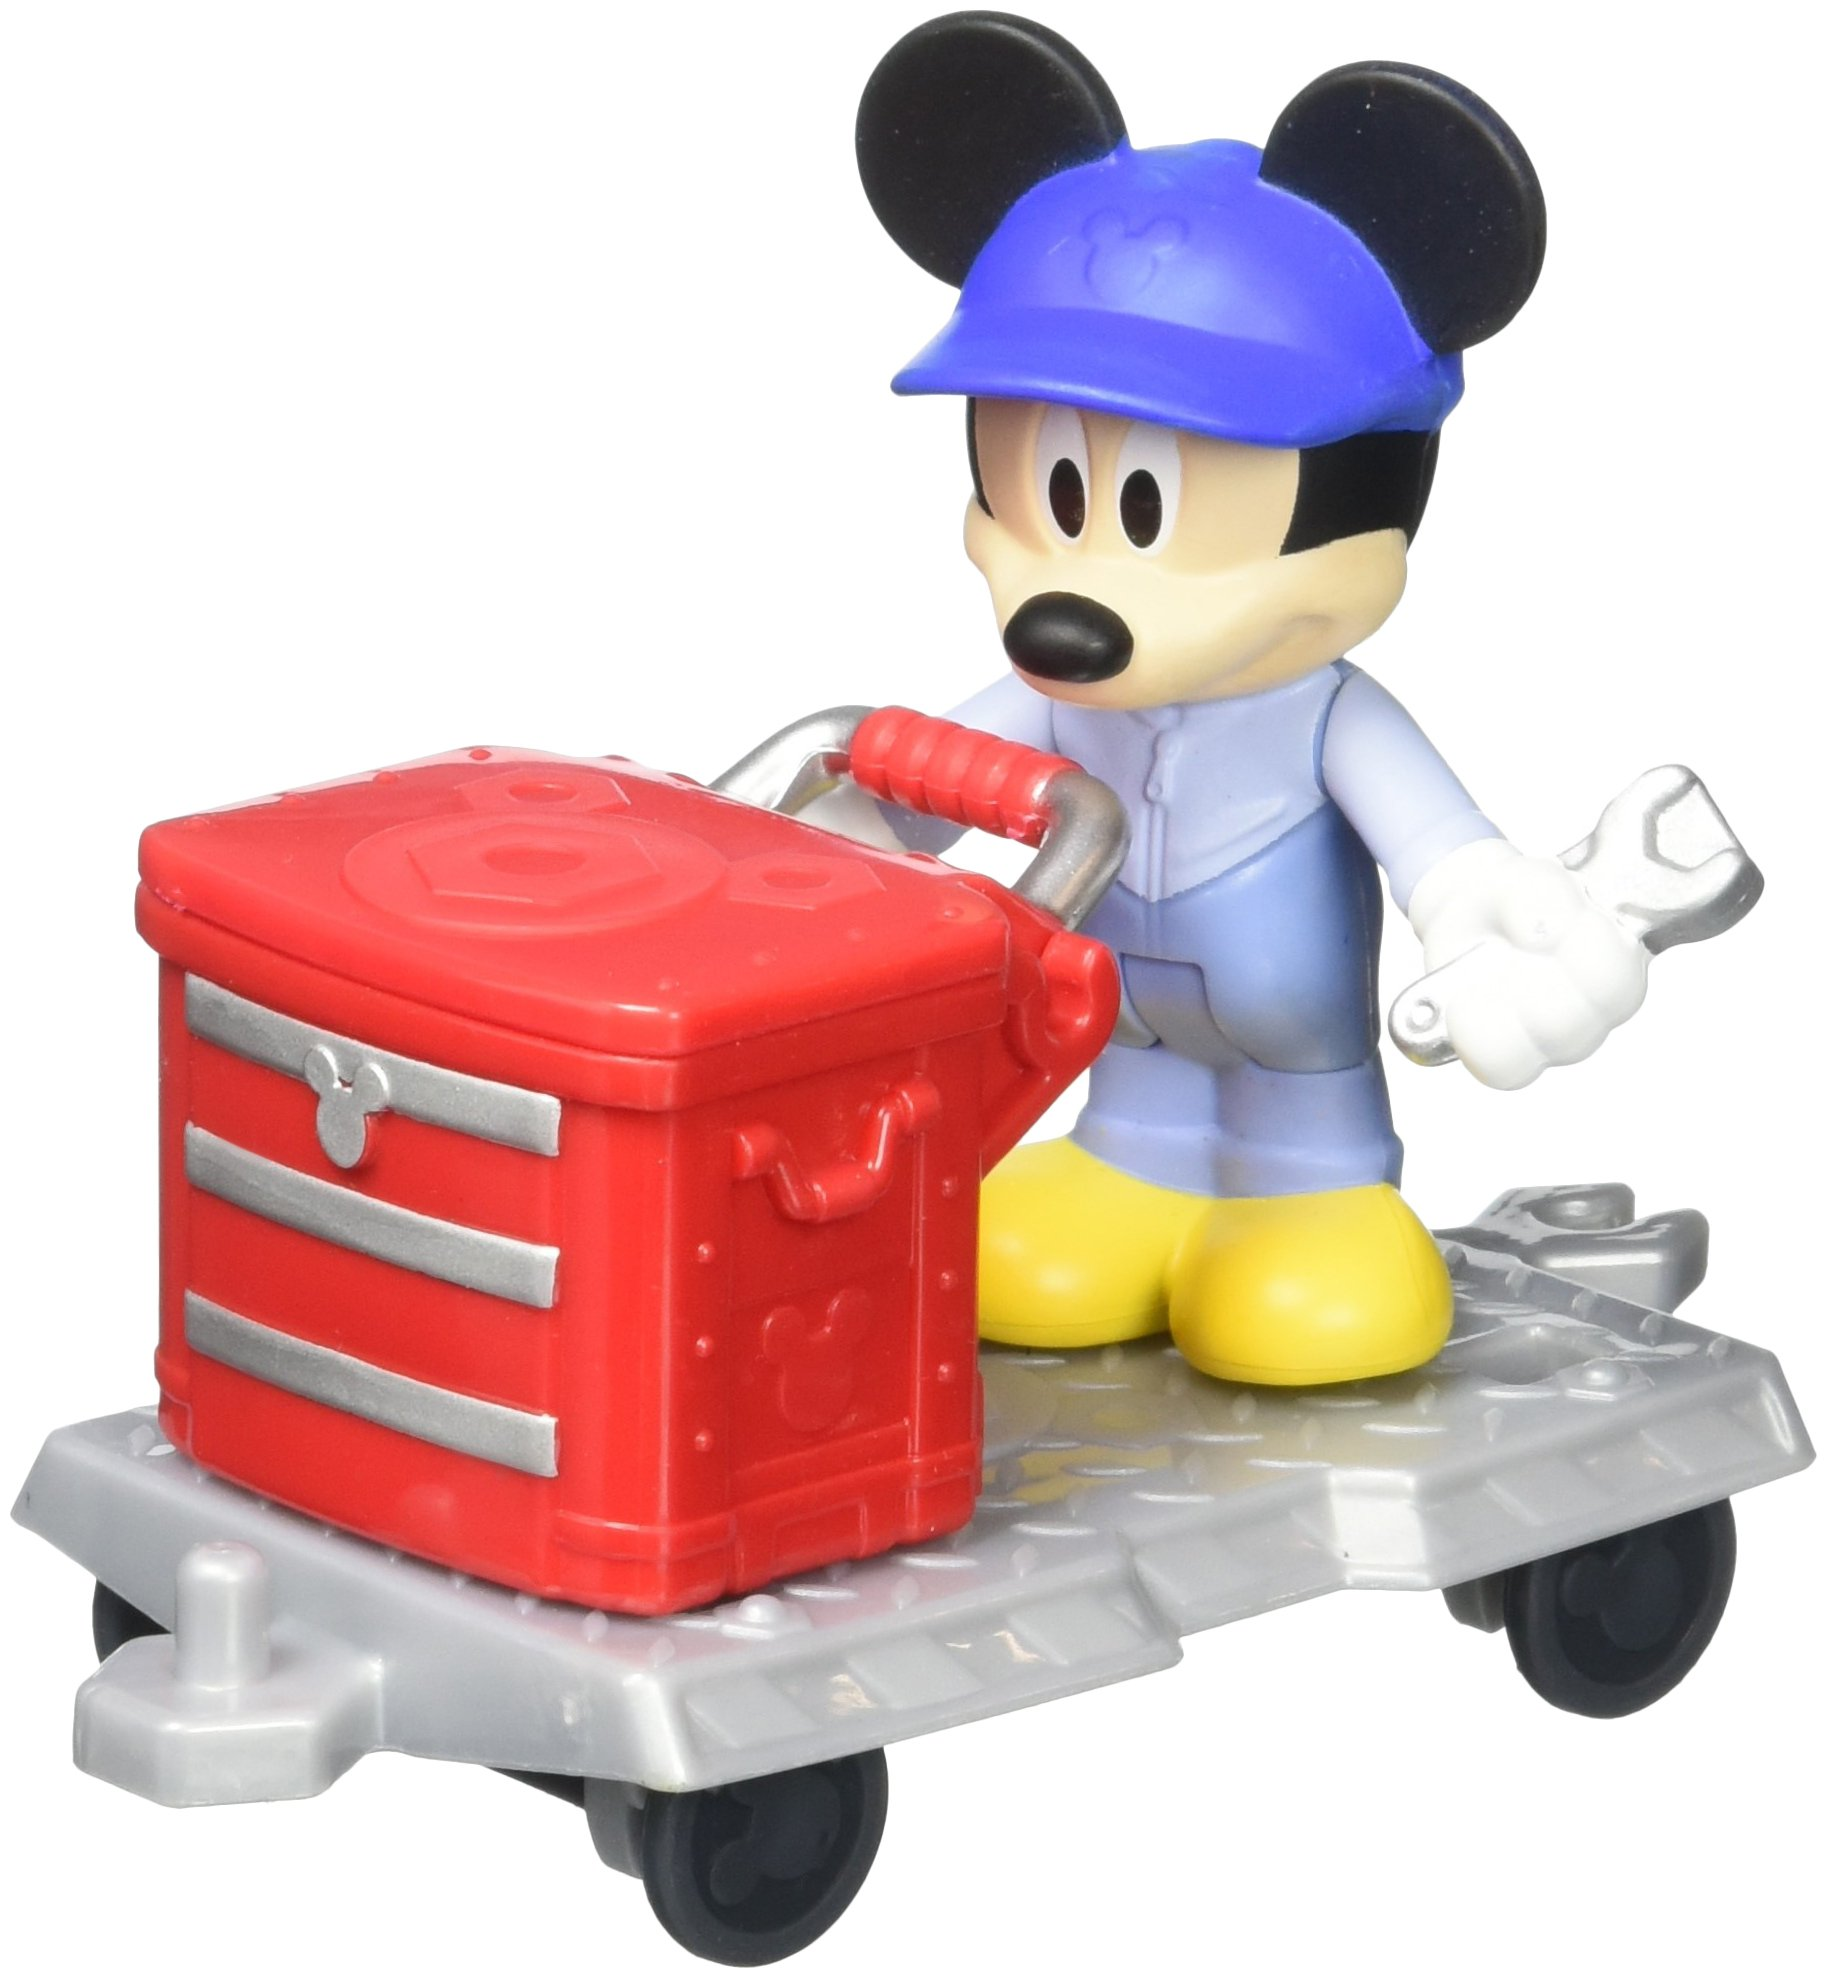 b9c5836c036 Other Toys - Fisher-Price Disney Mickey and the Roadster Racers ...